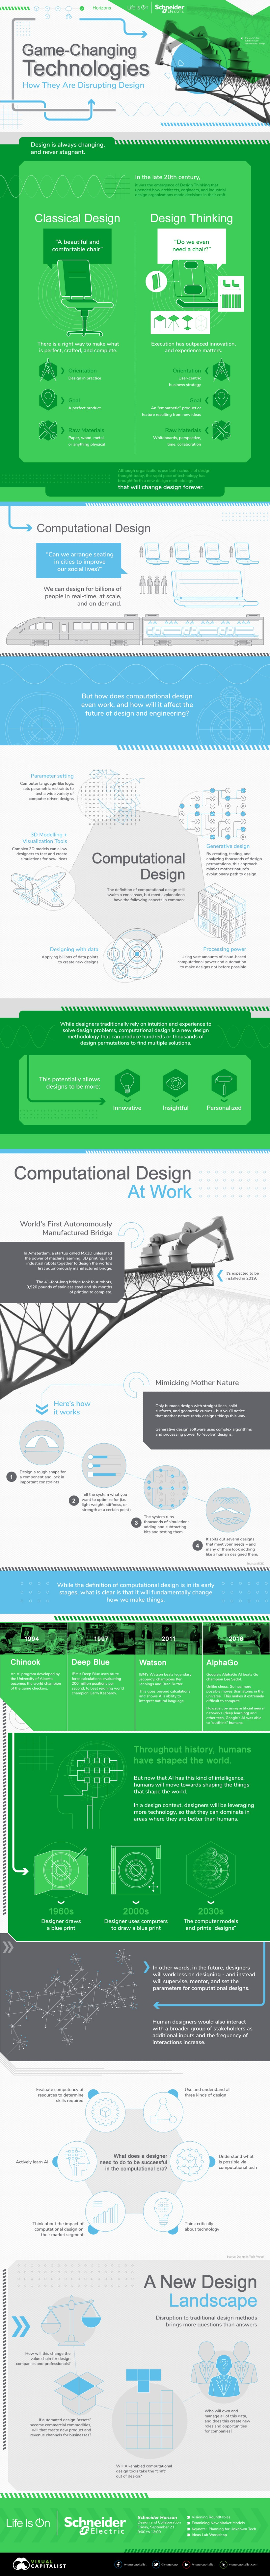 Computational Design: Paradigm Shift in Design and Engineering Theories - Infographic